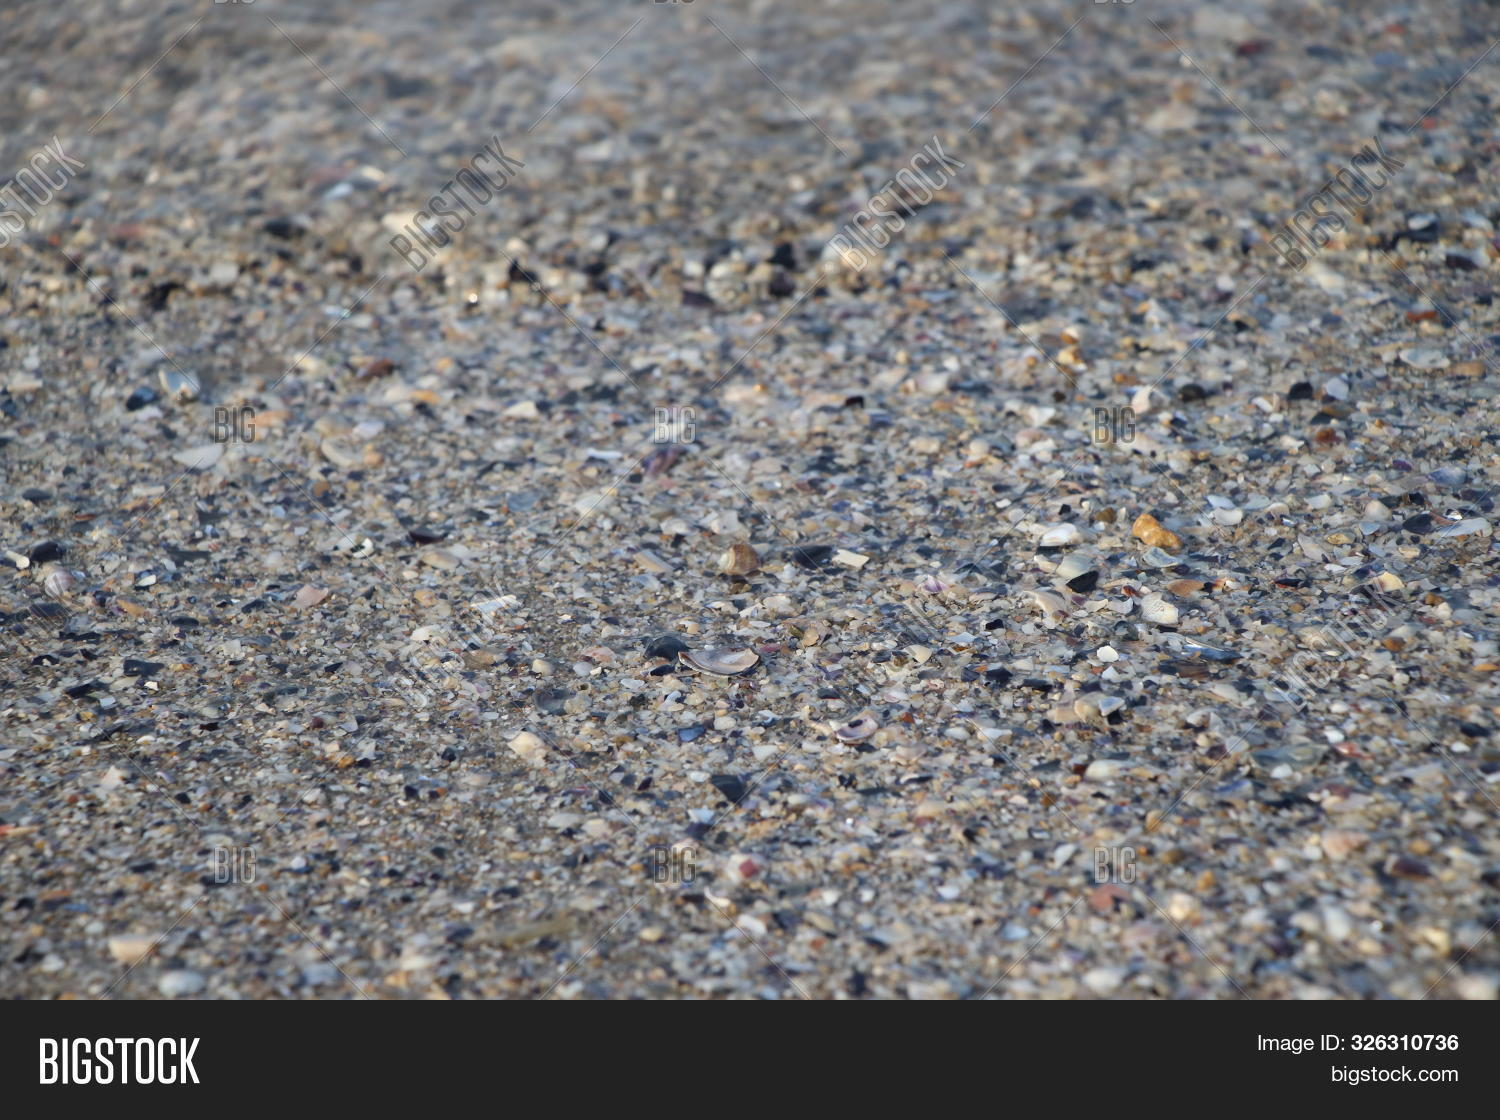 abstract,adriatic,backdrop,background,beach,close-up,closeup,coast,coastline,glass,gravel,green,grunge,marine,natural,nature,ocean,outdoor,pebble,rock,rough,sand,sandy,scattered,sea,seashell,seashore,seaside,shape,shell,shore,small,stone,structure,summer,surface,texture,textured,tourism,travel,triangle,vacation,water,wet